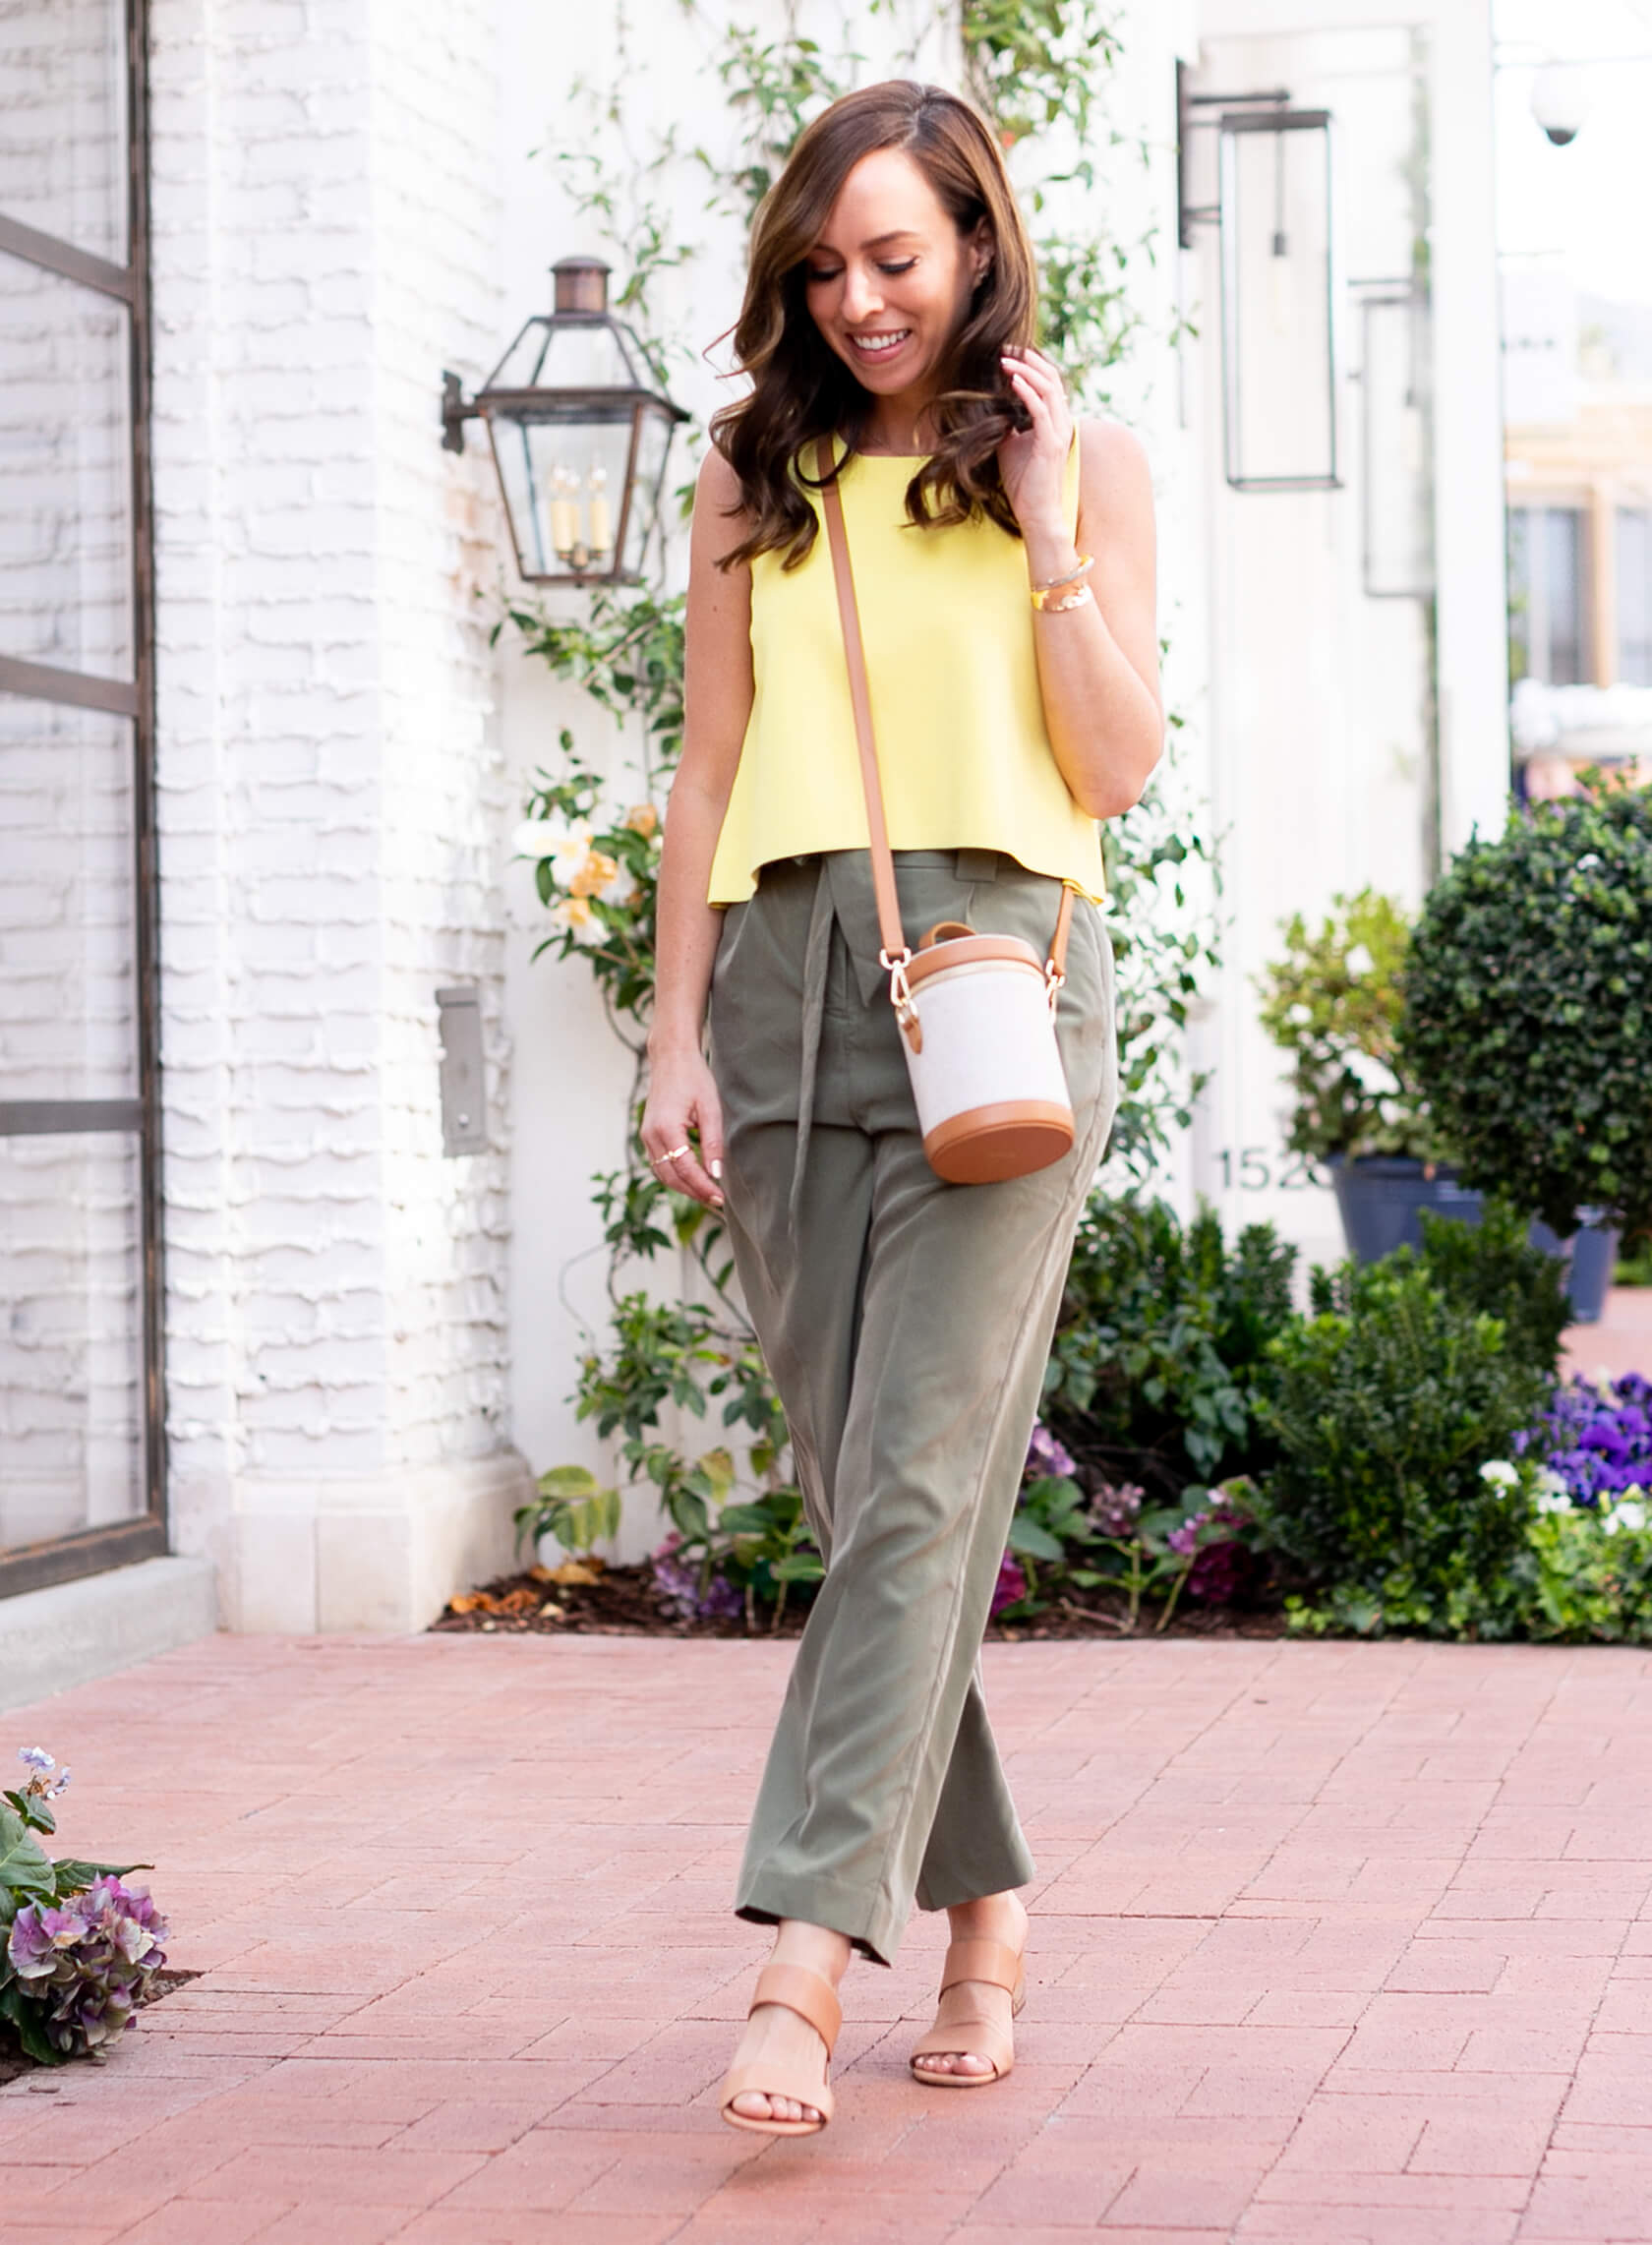 Sydne Style shows comfy outfit ideas in paperbag waist pants | Sydne Style